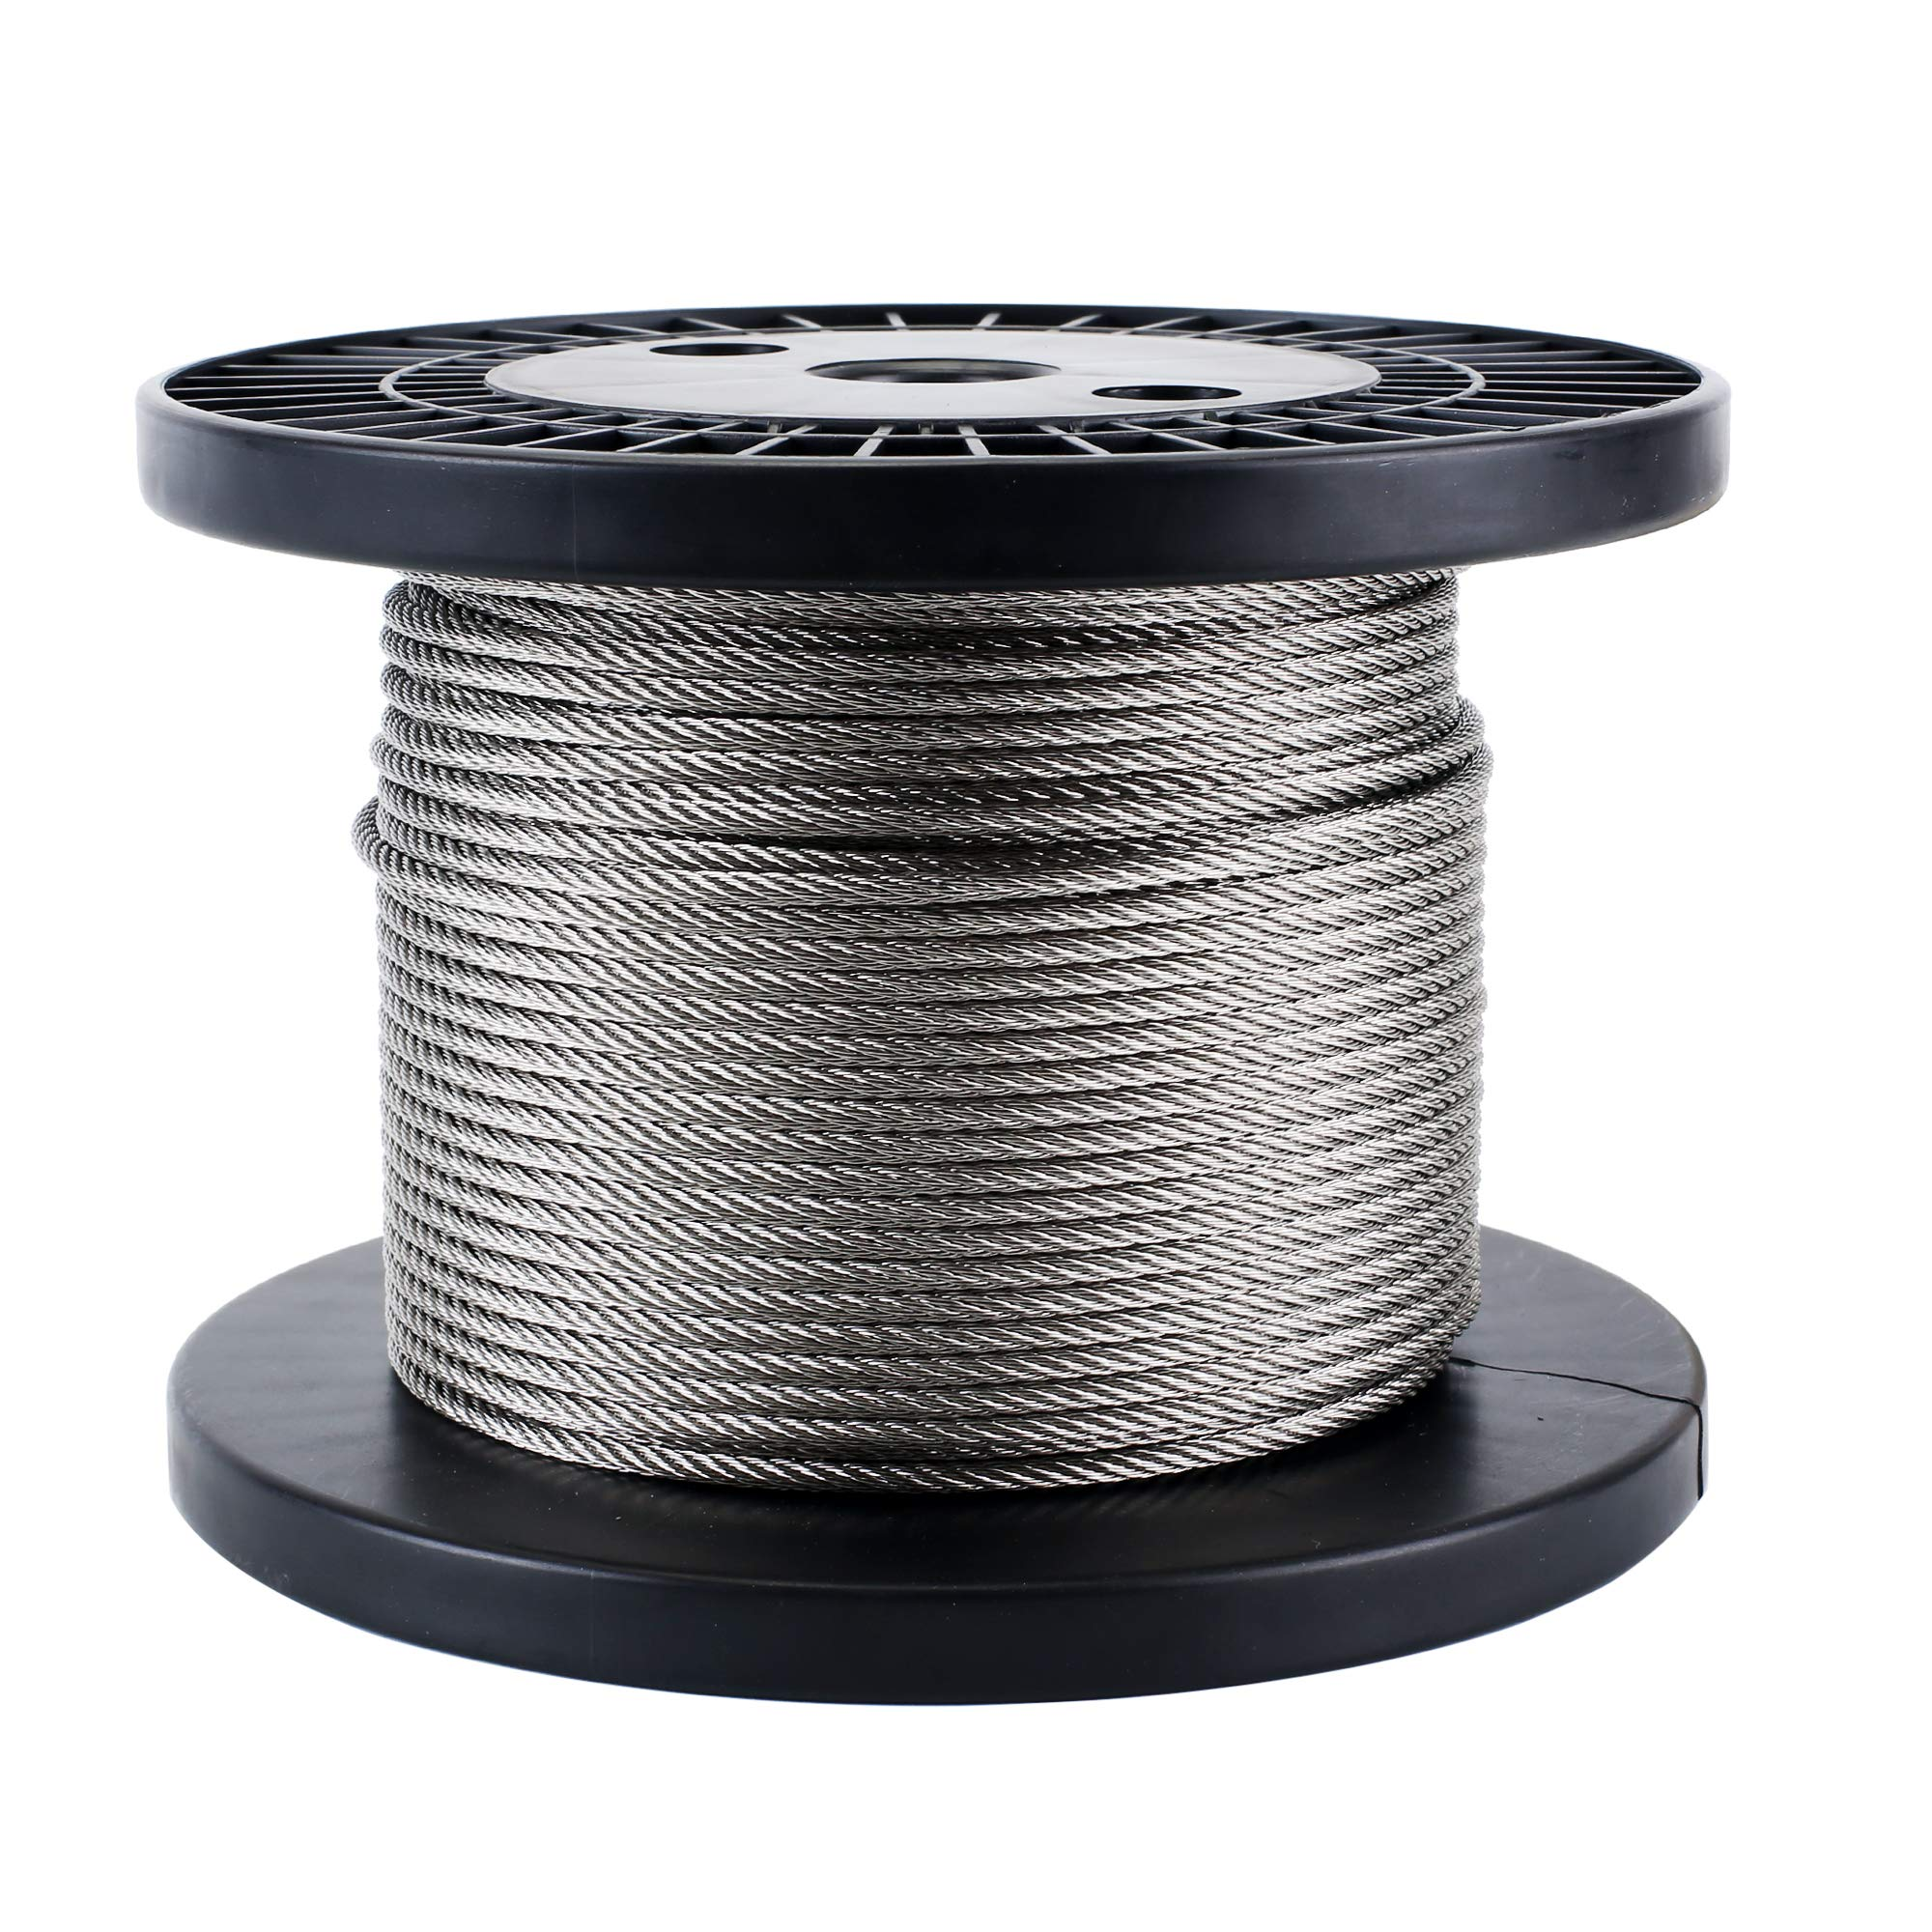 Zoostliss 100Ft Stainless Steel Aircraft Wire Rope 1/8'' for Deck Cable Railing Kit, 7x7 T316 Marin Grade